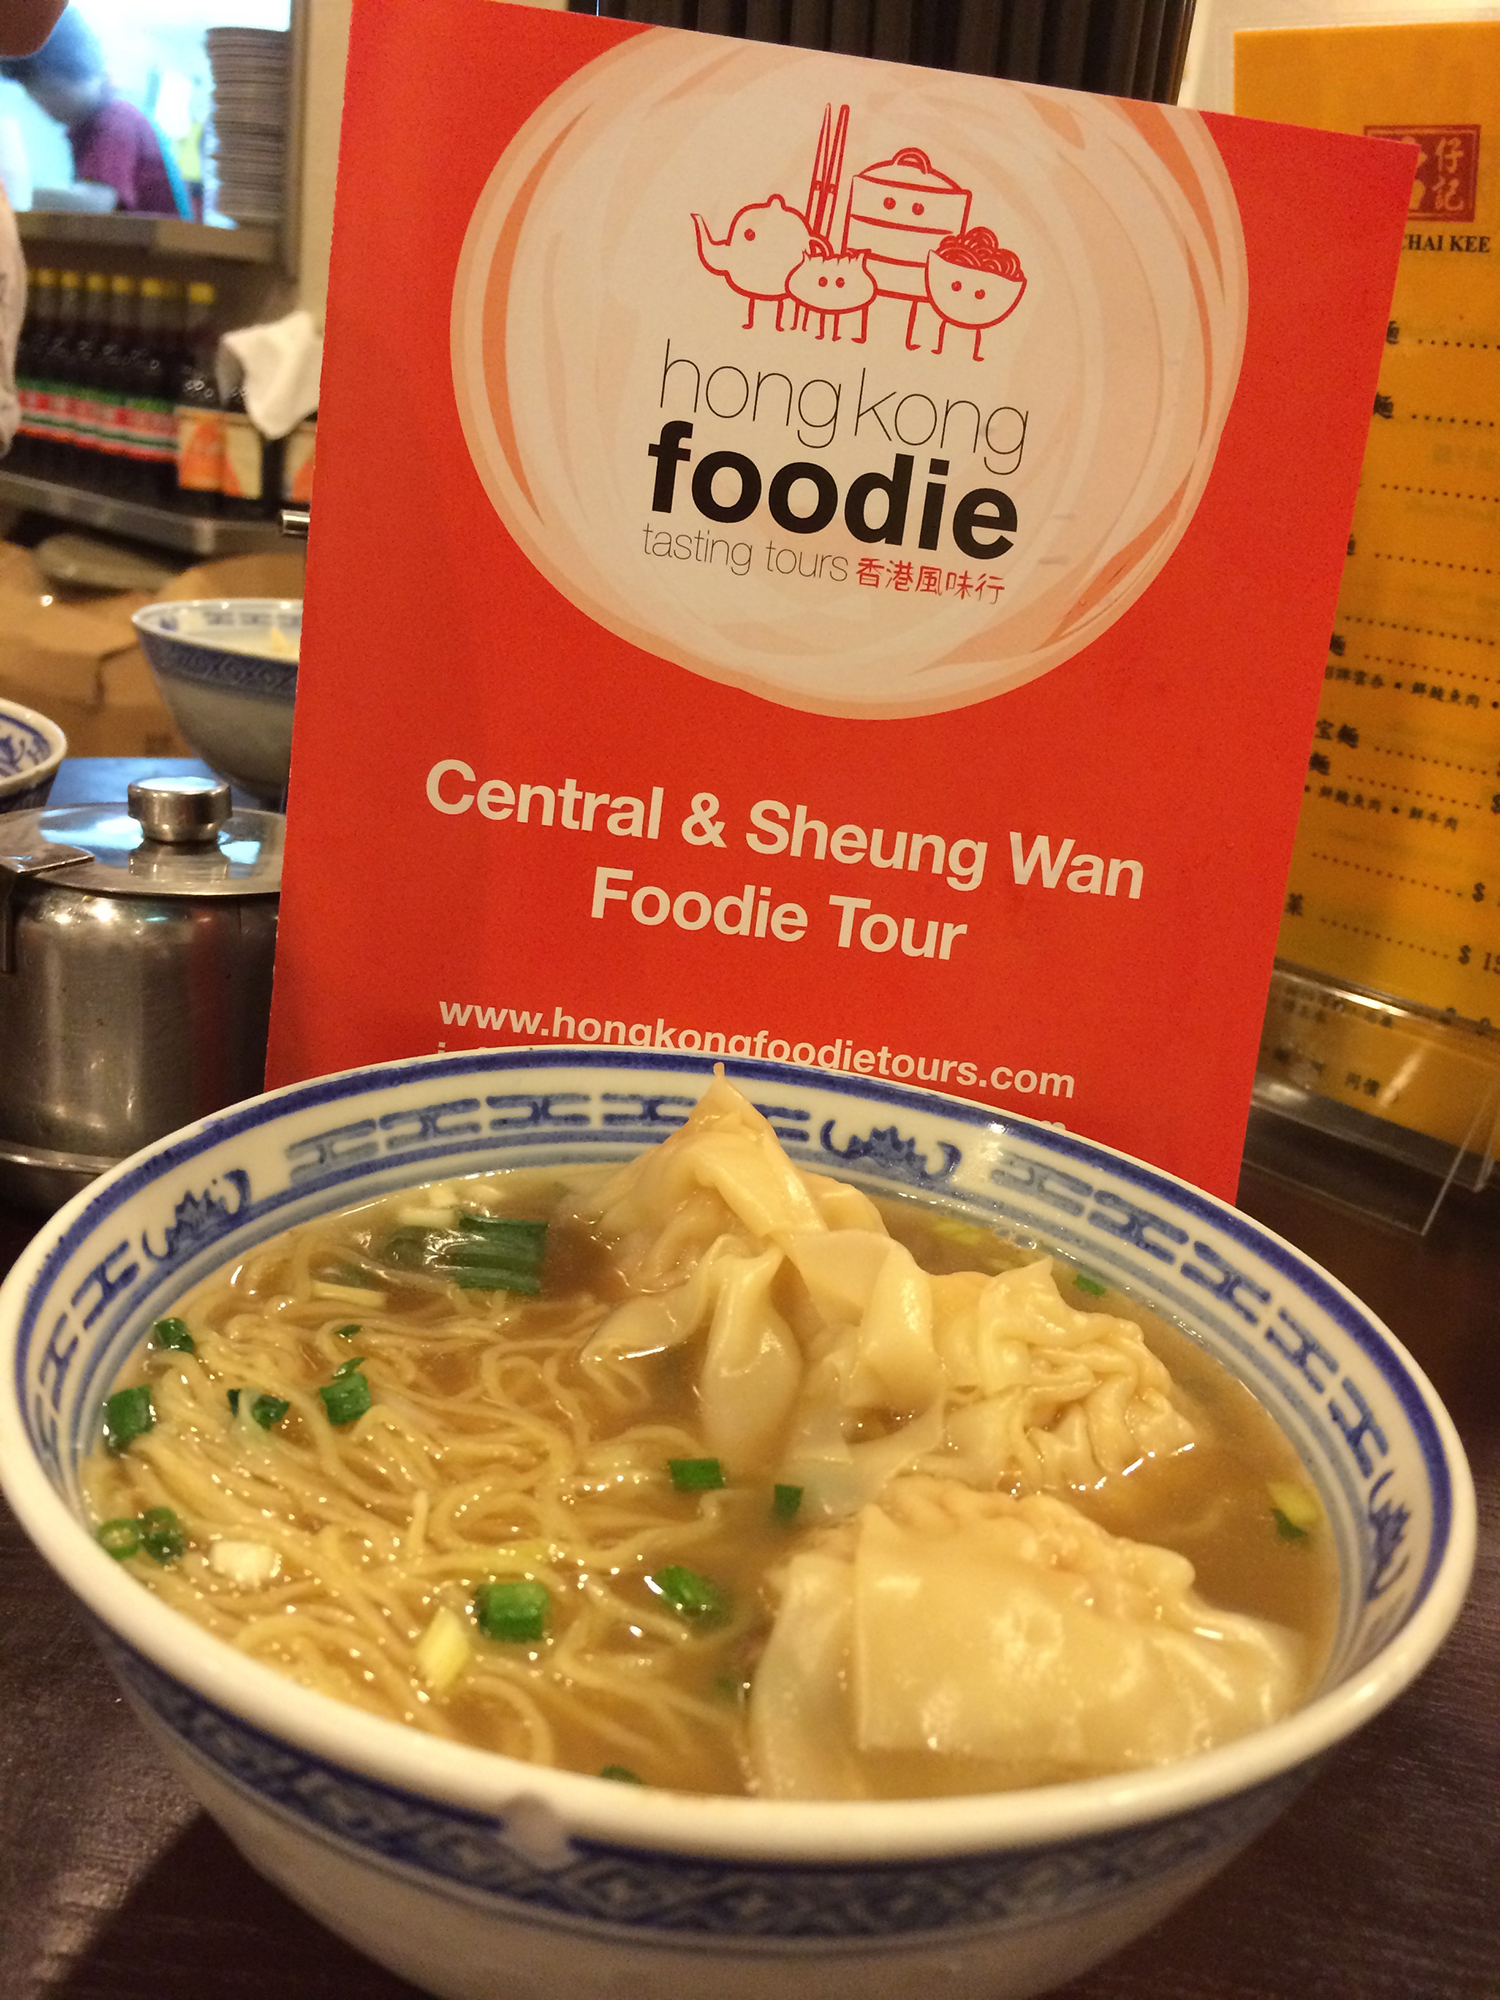 The Hong Kong Foodie tasting tour